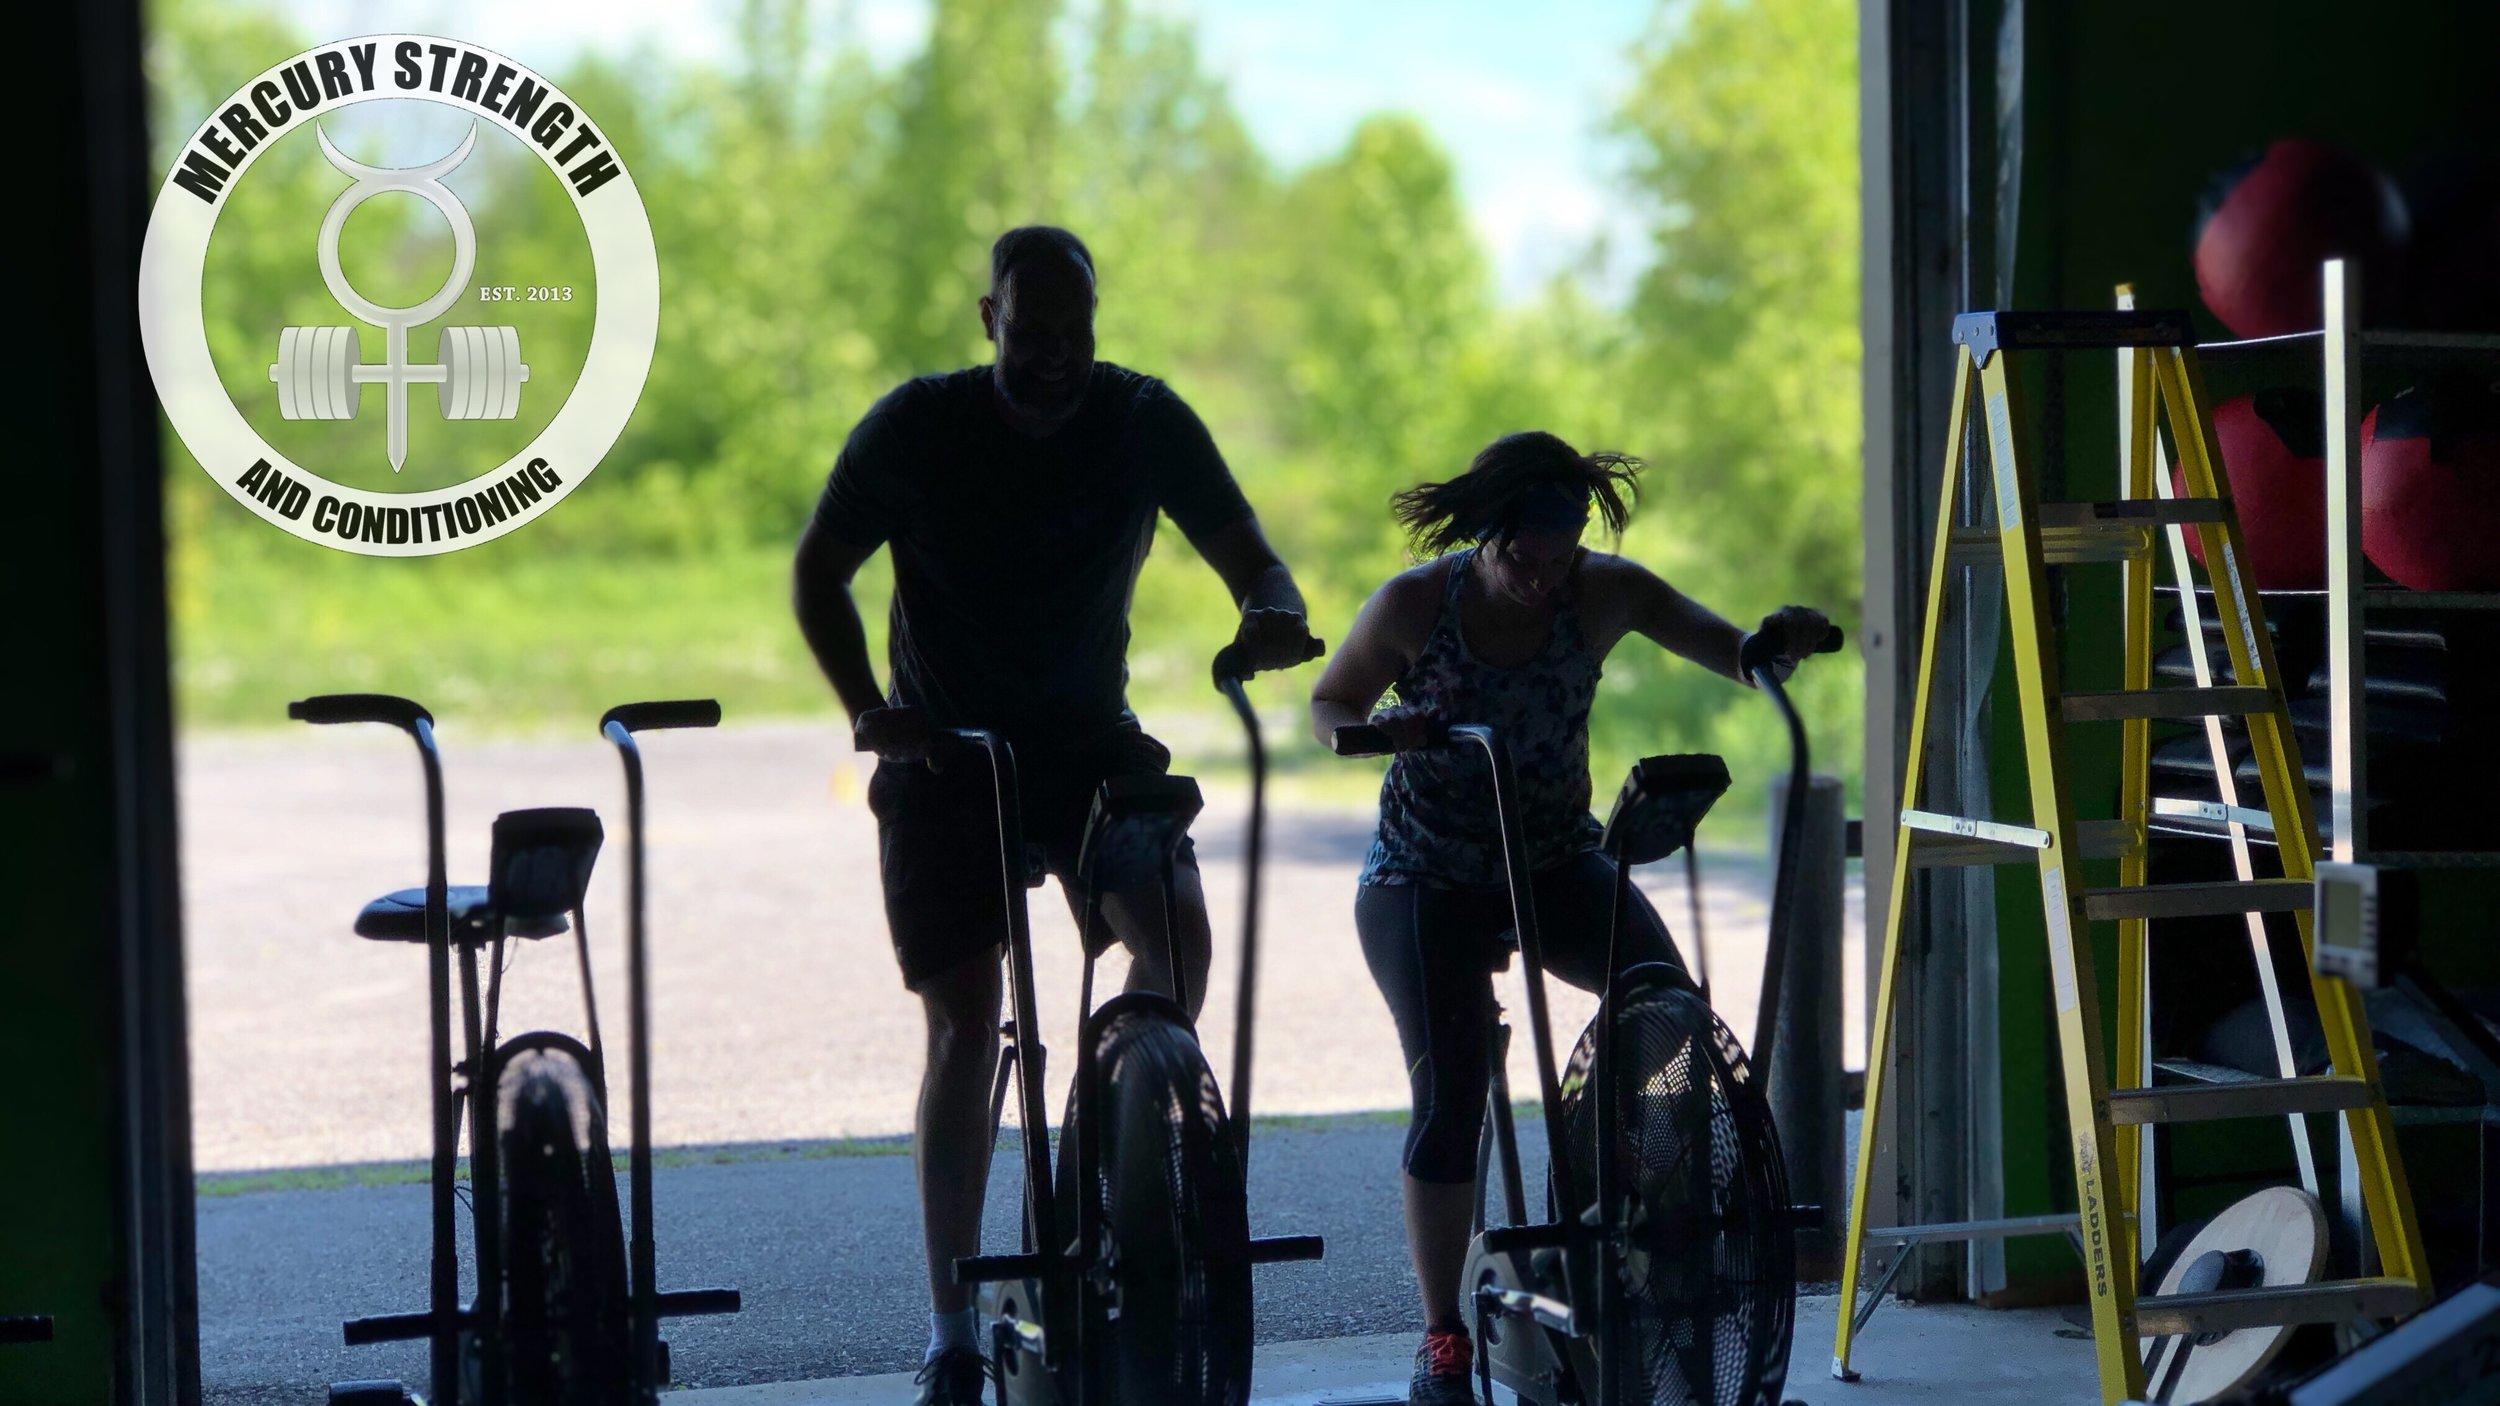 Andrew and Shawna burning up some calories on the air dyne